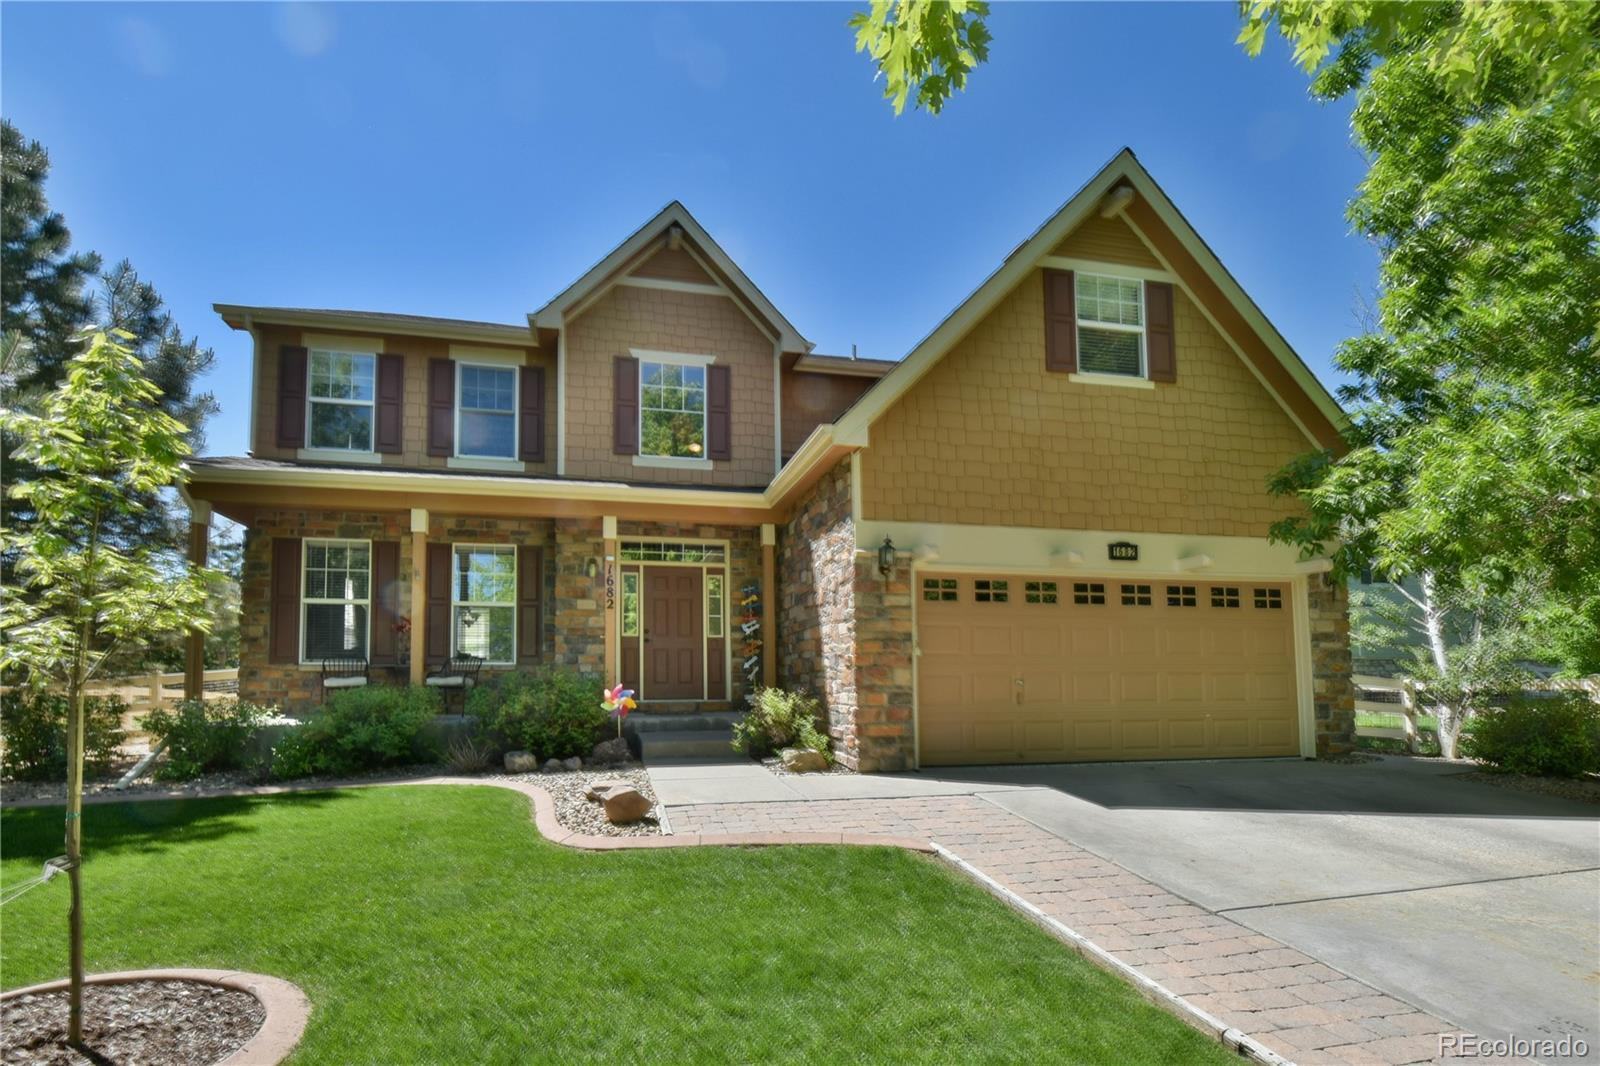 1682 W 130th Drive, Westminster, CO 80234 - #: 4567459